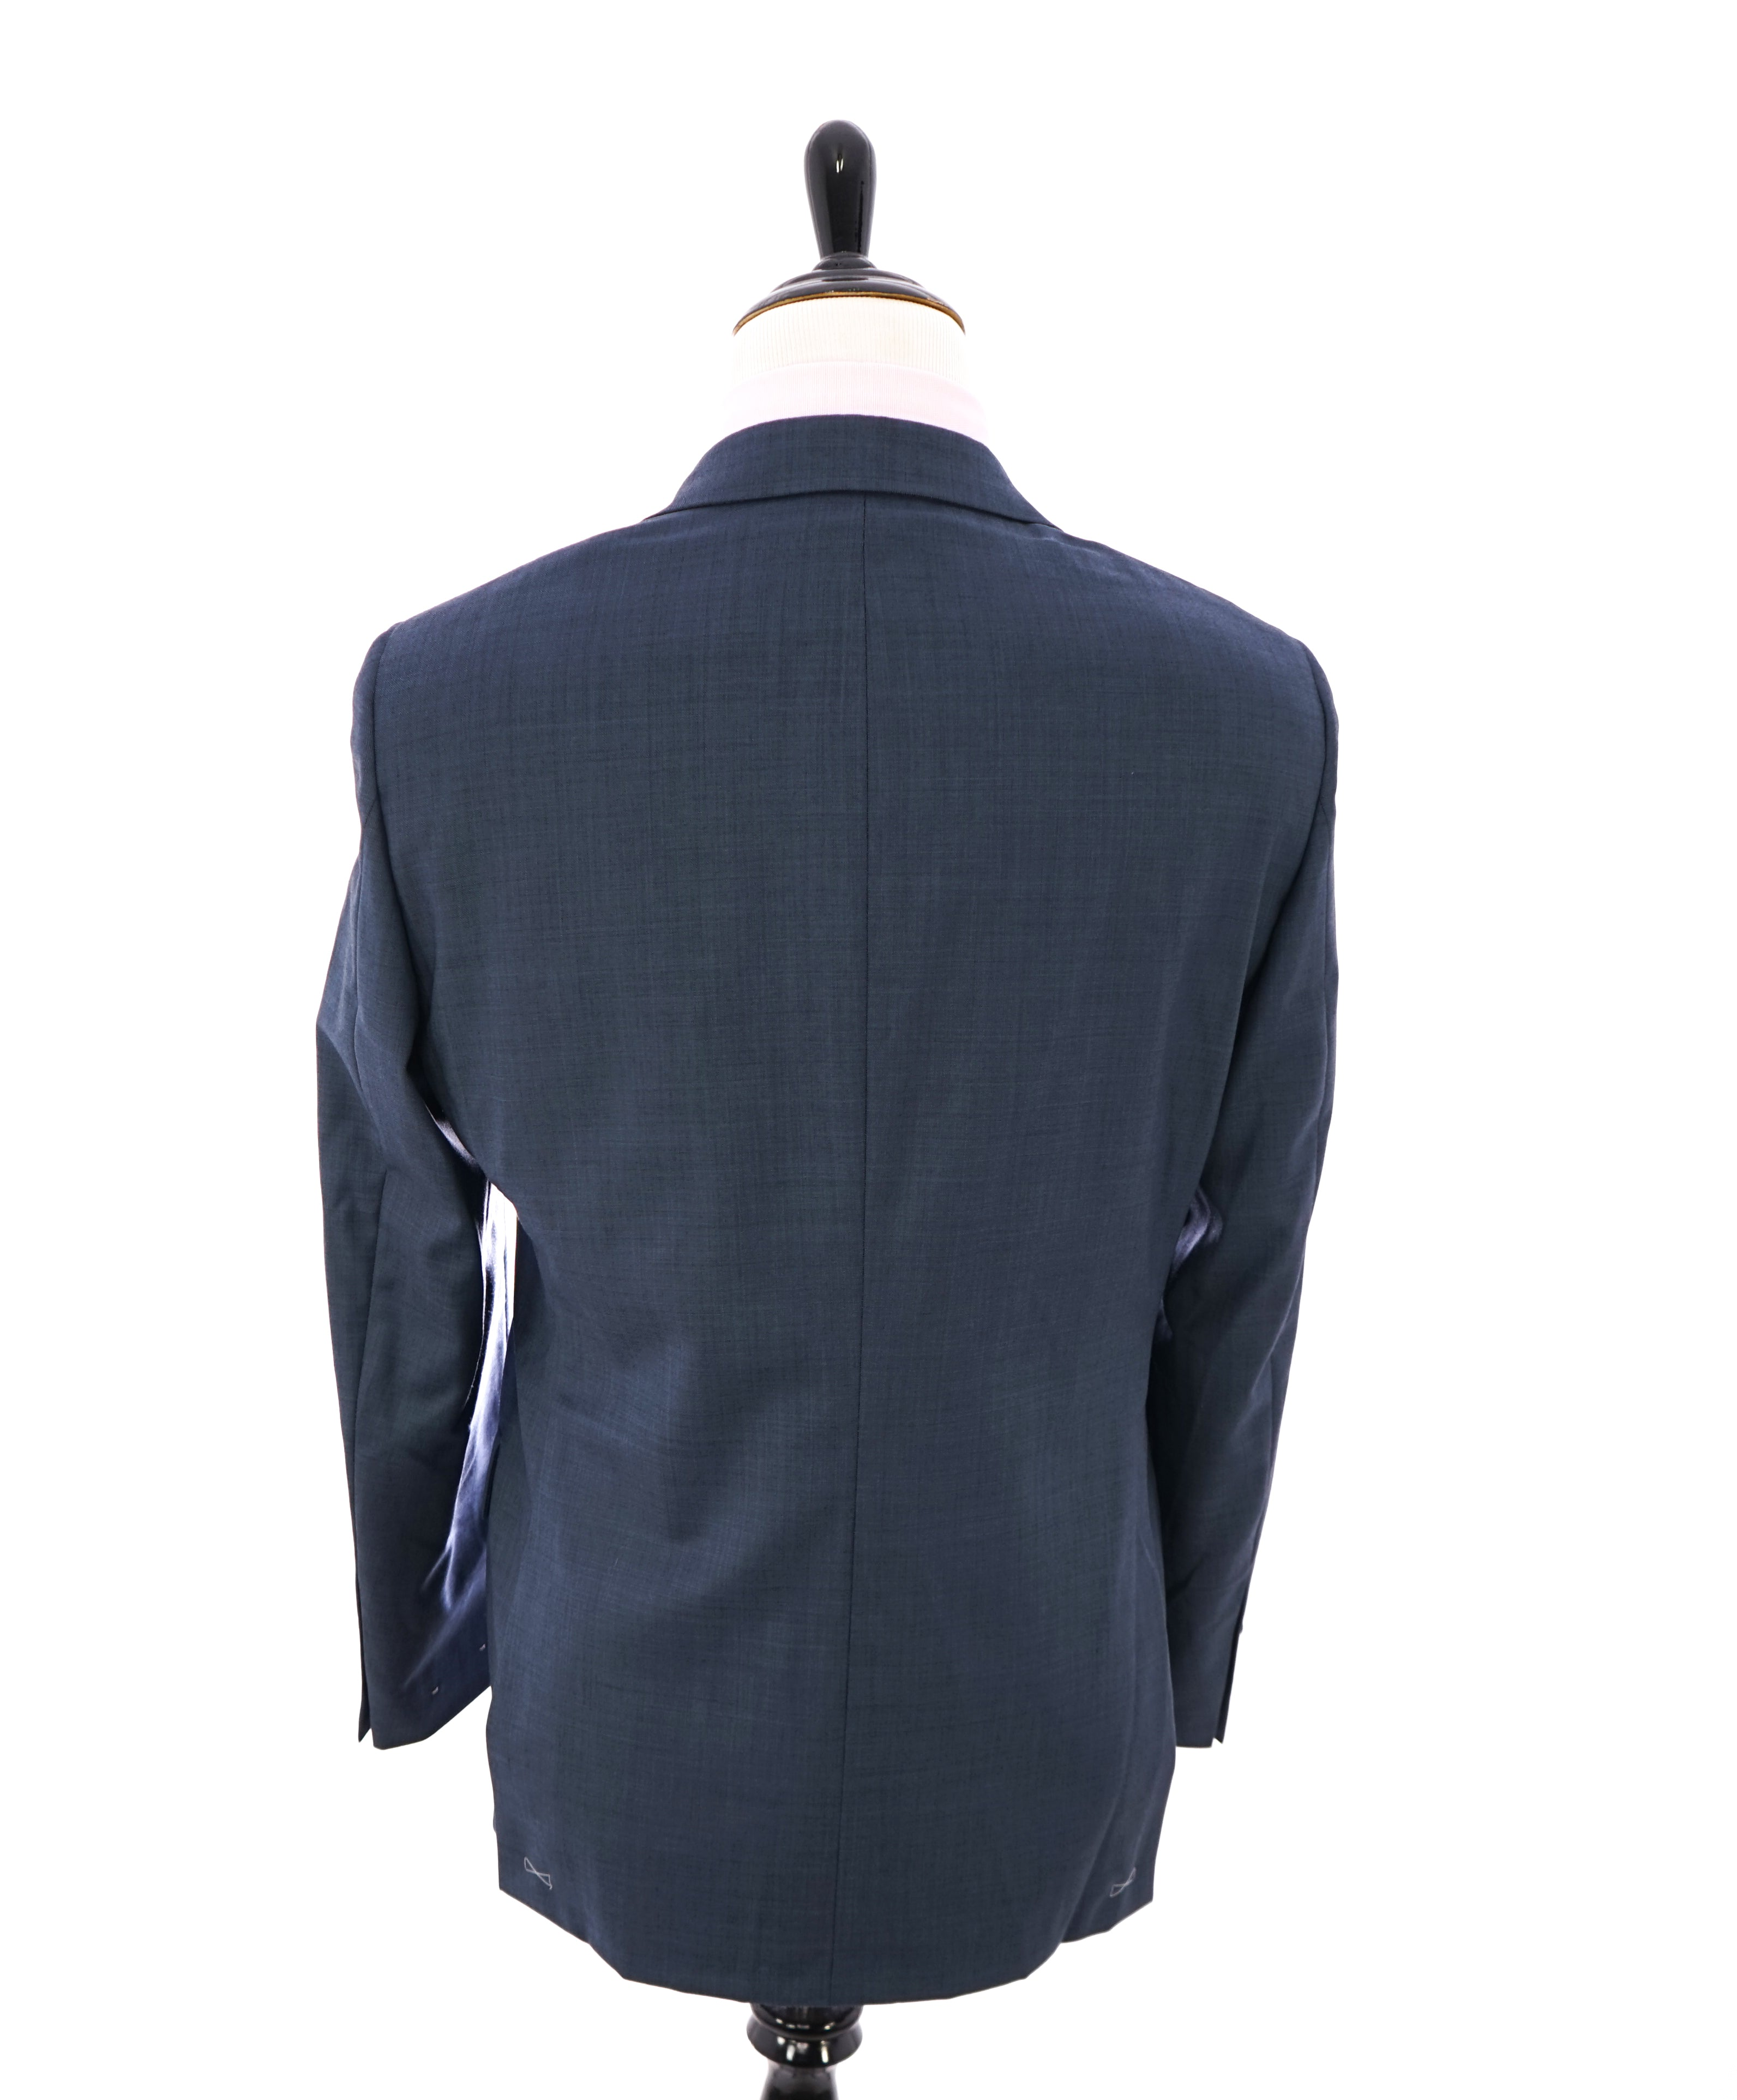 "HICKEY FREEMAN - Pastel Blue Textured Wool ""Milburn ii"" Suit - 40R"